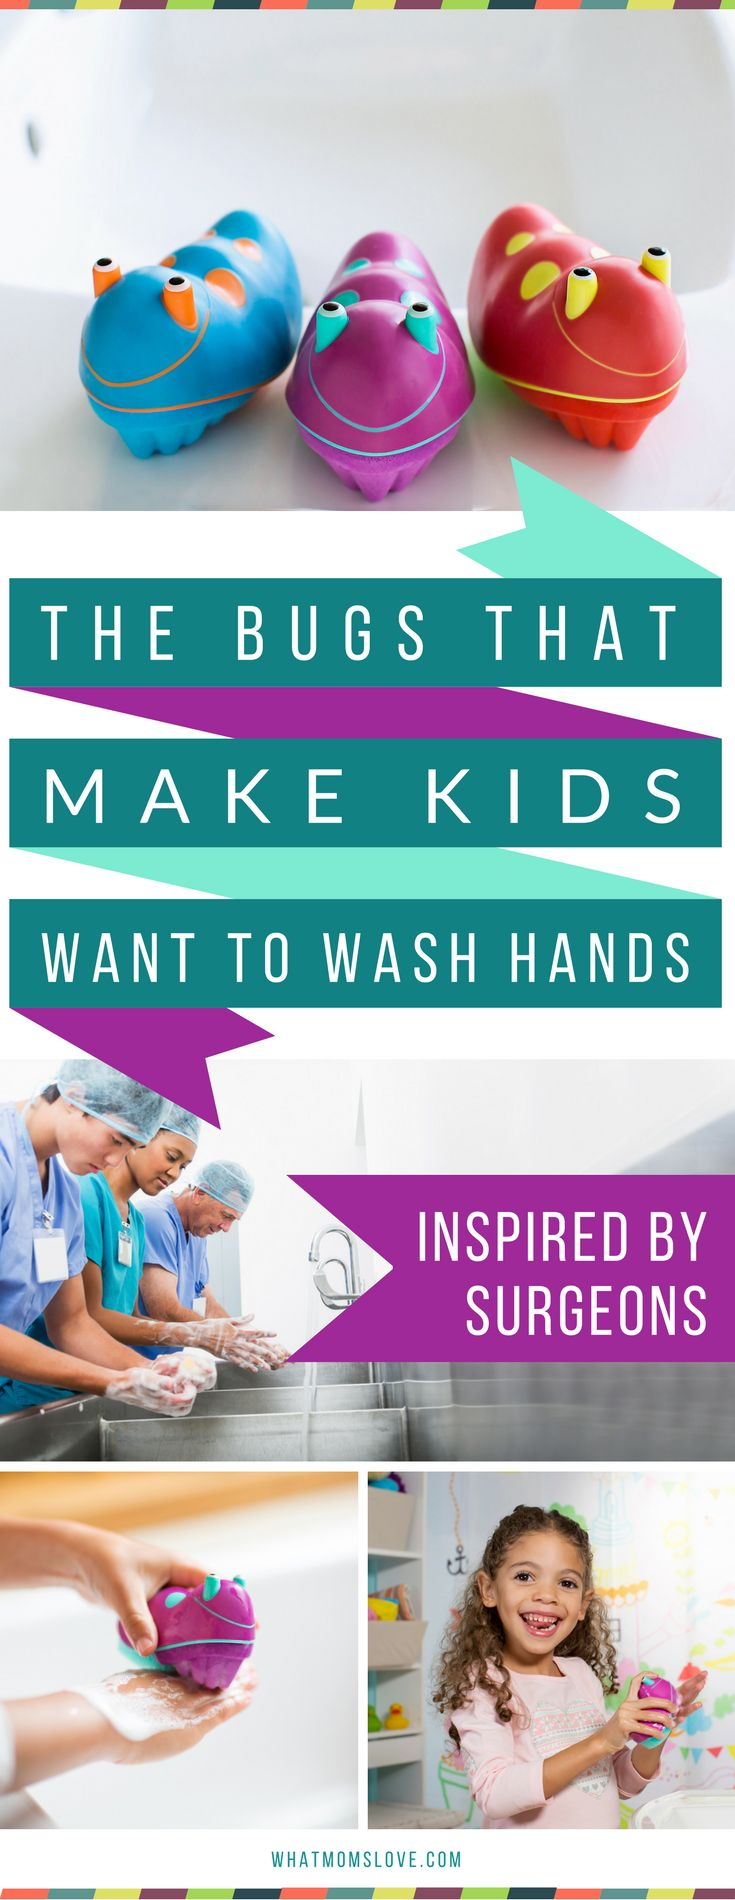 Keep your kids healthy all year round - especially during the winter, flu and cold season! These Scrub Bugs are 3 times more effective, and a fun way to get kids to wash their hands - keeping them healthy, instead of sick - hurrah! Learn more and get an exclusive promo code at whatmomslove.com